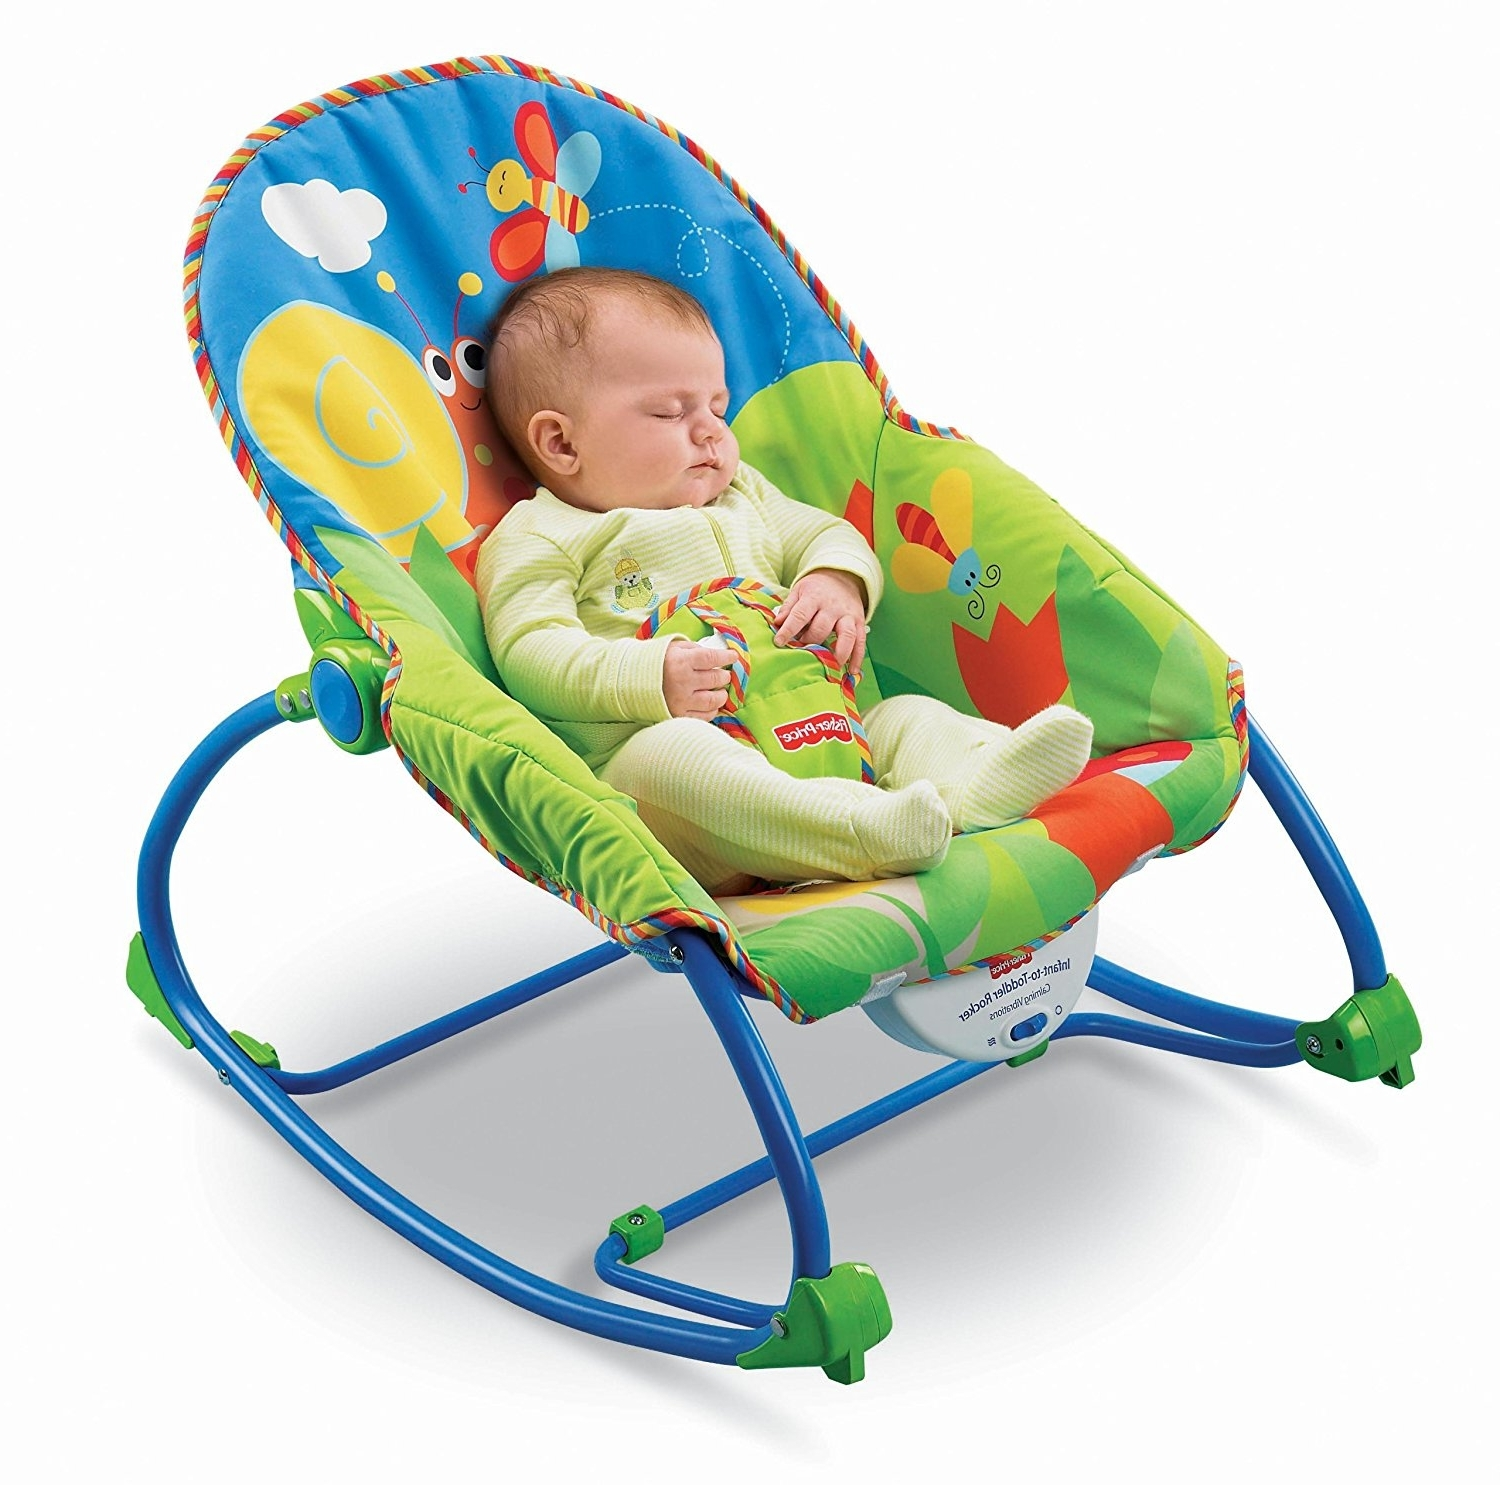 Comfy Baby Rocker Chairs Uk J13S On Nice Decorating Home Ideas With Pertaining To Current Rocking Chairs For Babies (View 3 of 15)